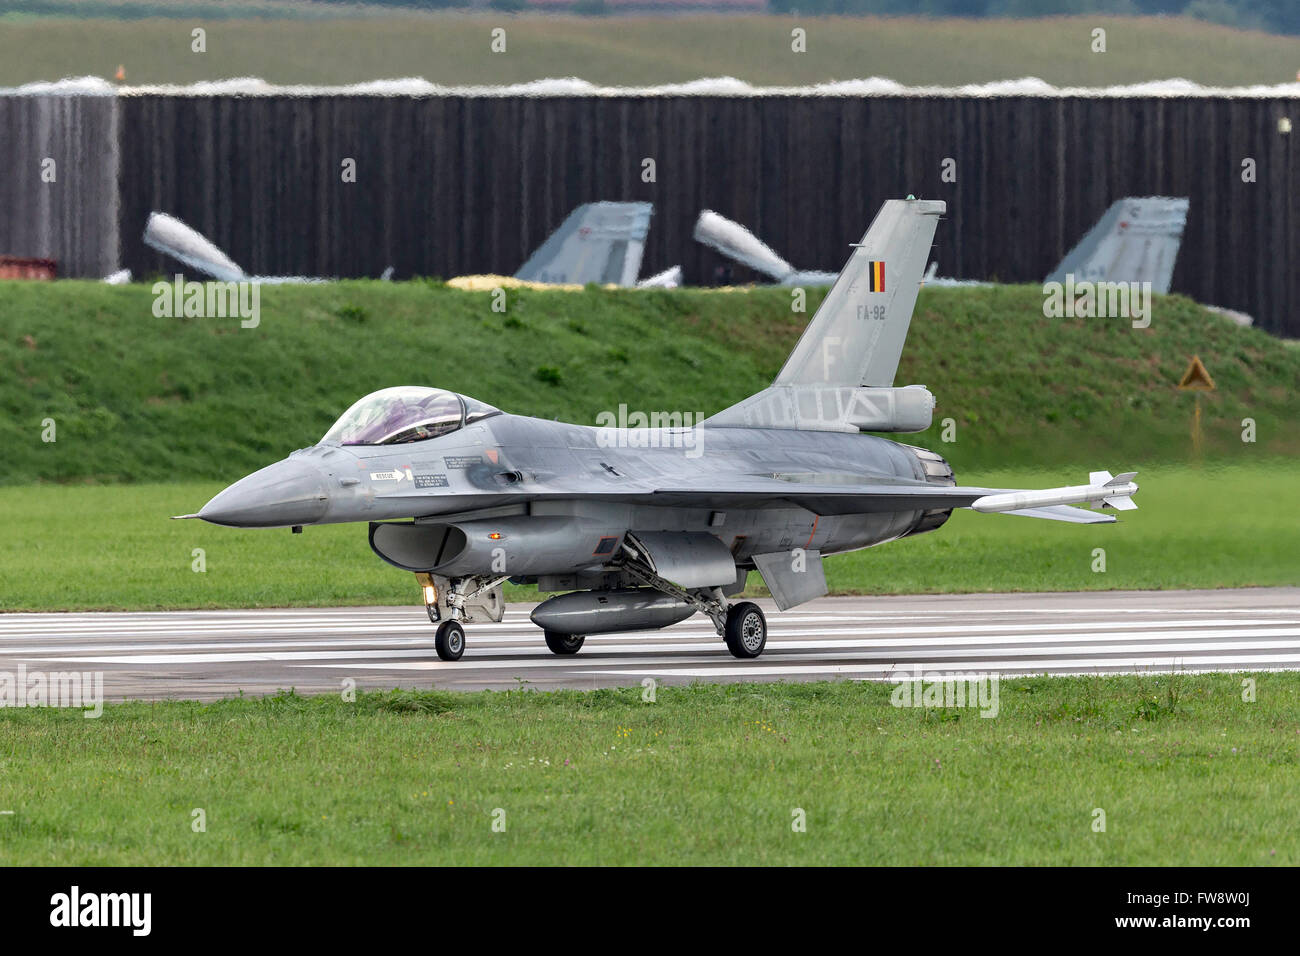 Belgian Air Component General Dynamics F-16AM multirole fighter aircraft - Stock Image